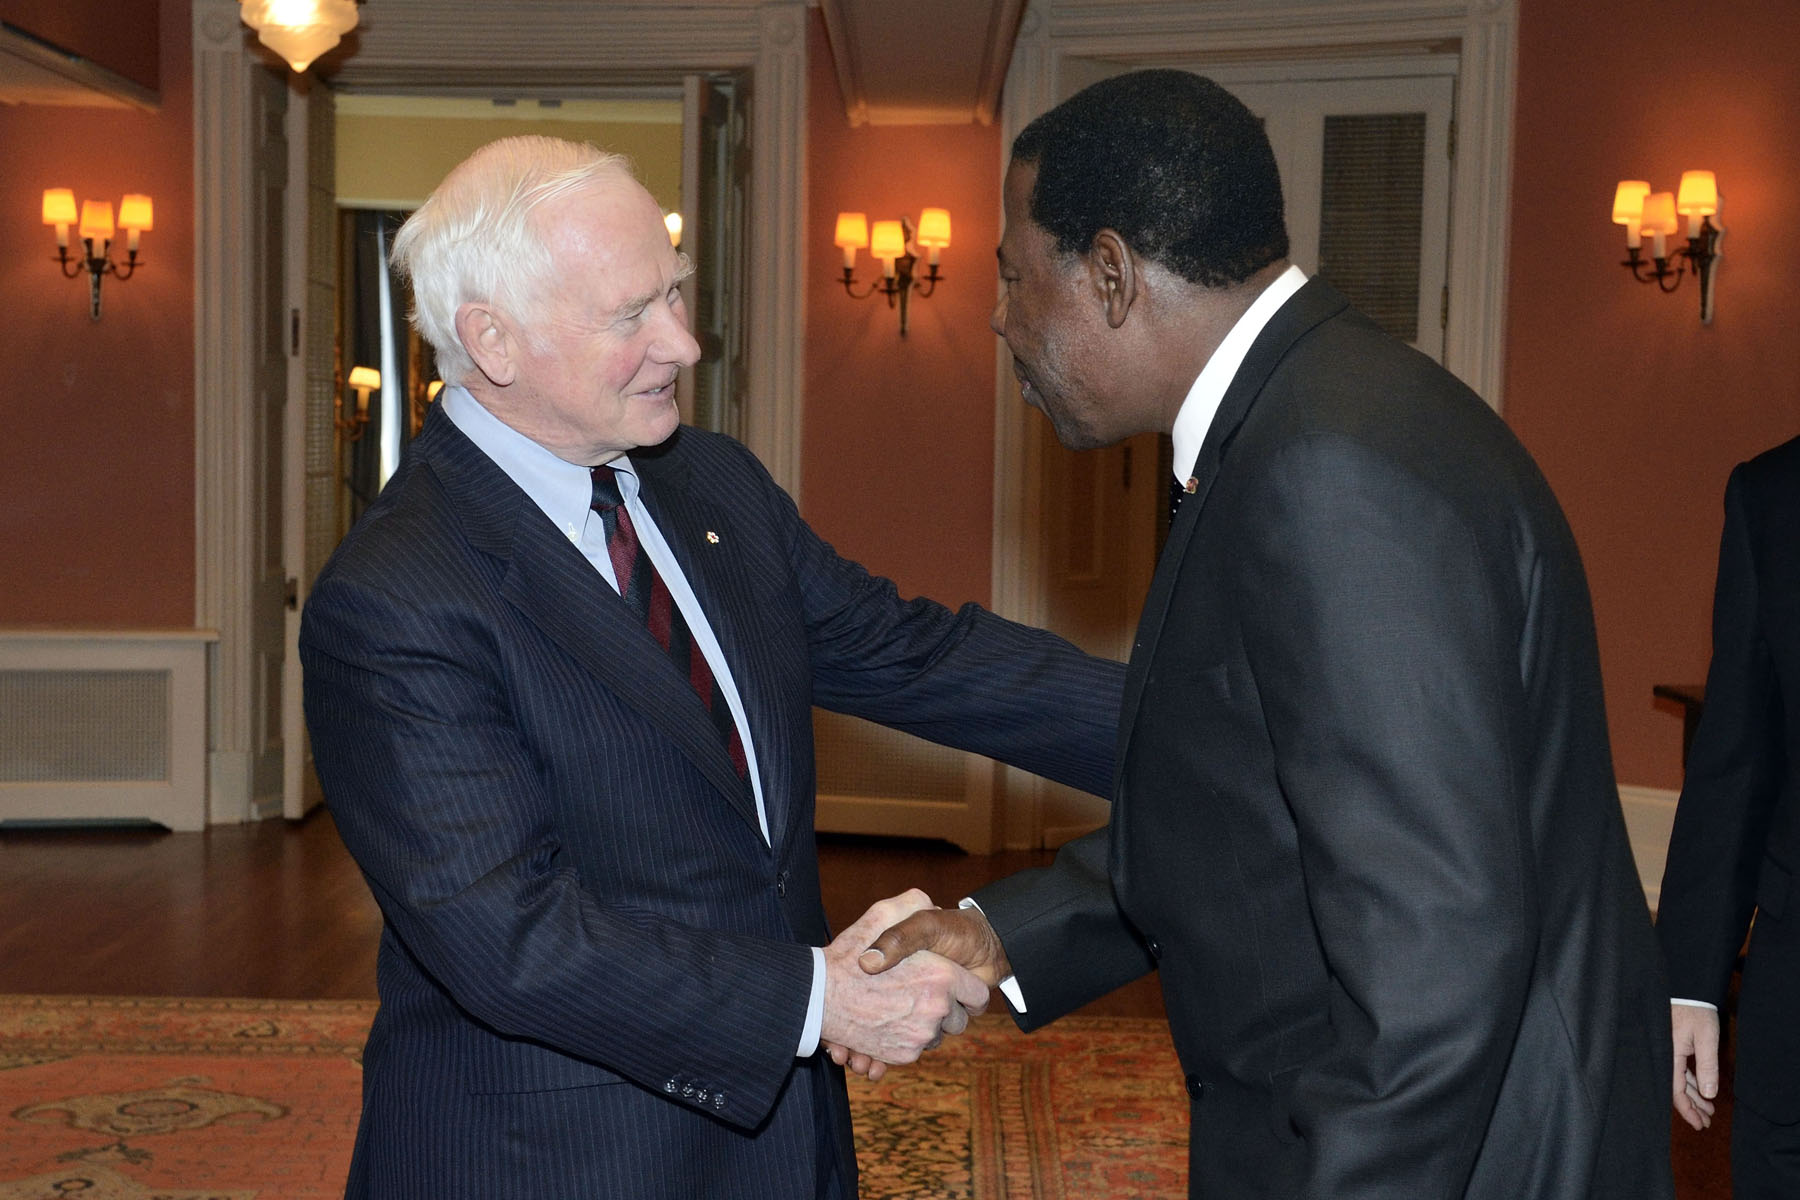 His Excellency the Right Honourable David Johnston, Governor General of Canada, welcomed His Excellency Dr. Boni Yayi, President of the Republic of Benin, to Rideau Hall, for a courtesy call on Wednesday, January 9, 2013.